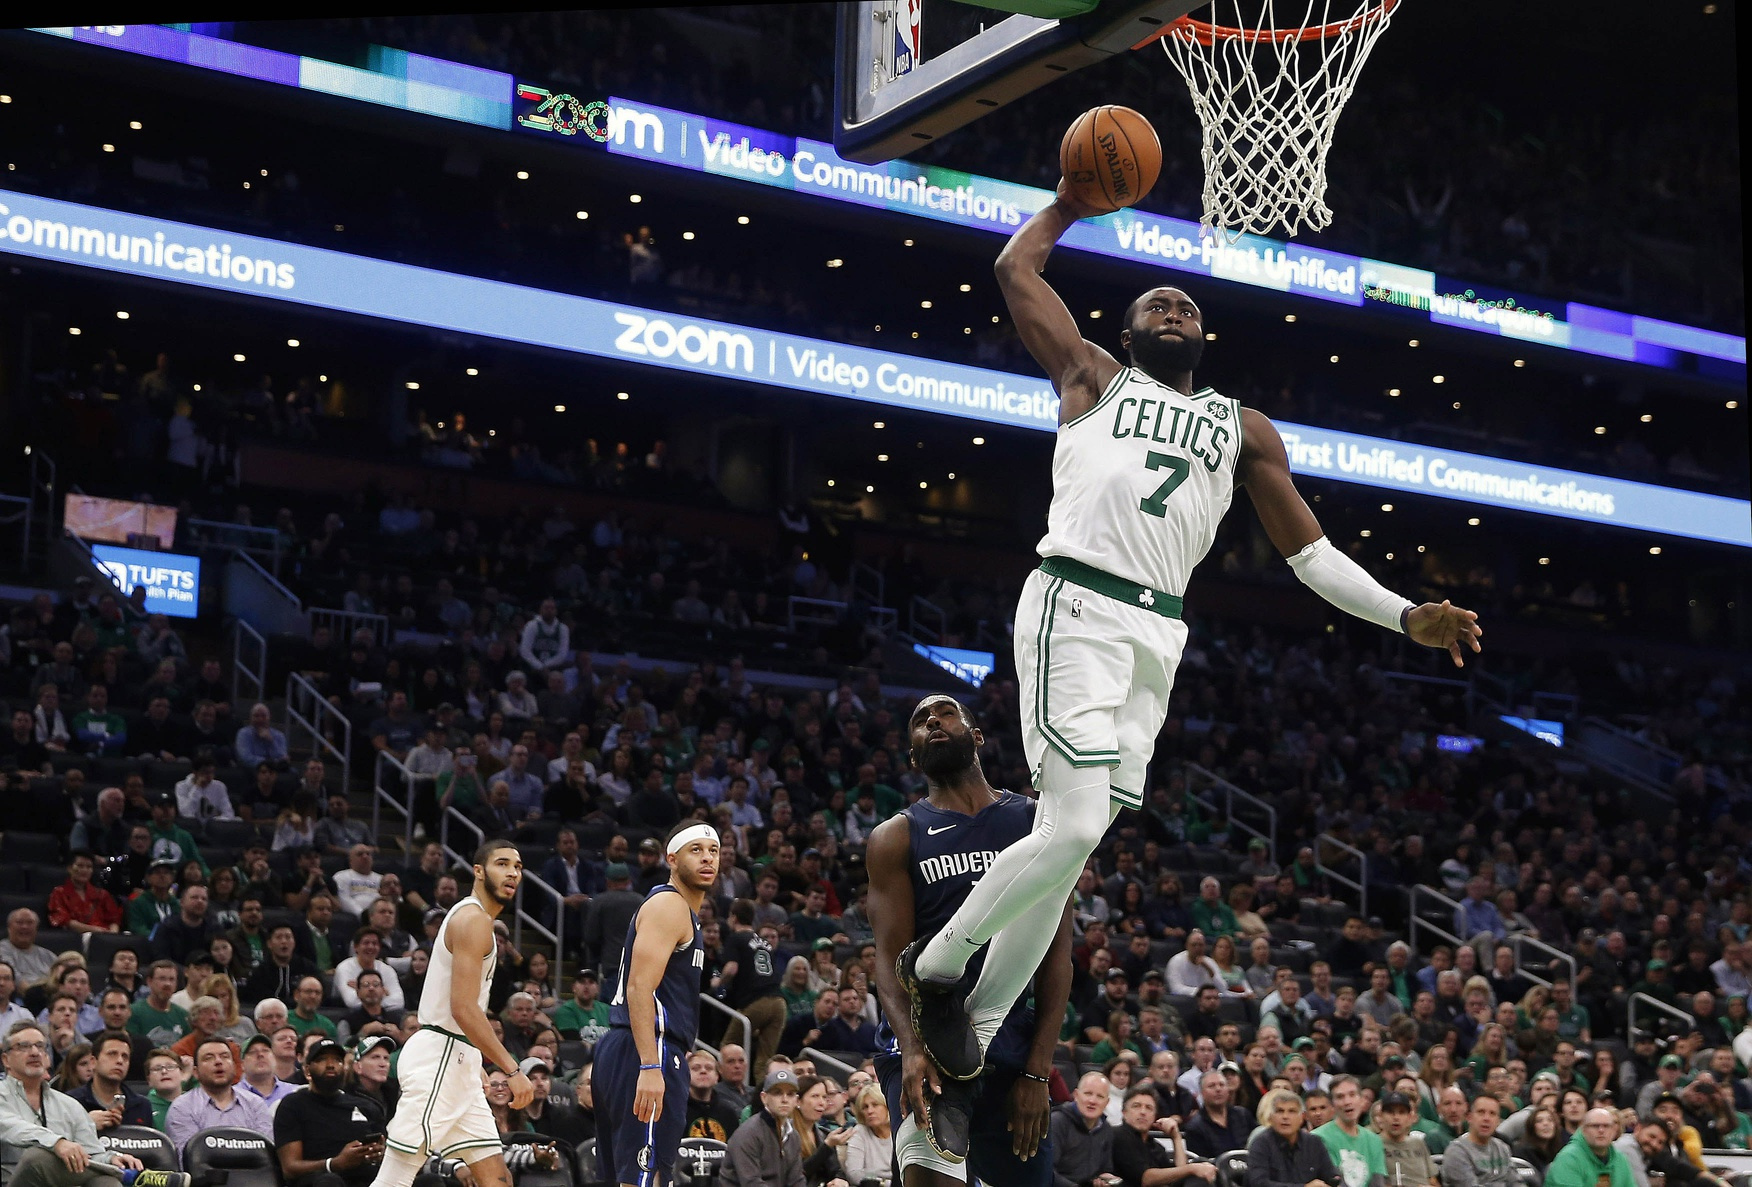 5 rational thoughts about the Celtics thrilling win over Dallas